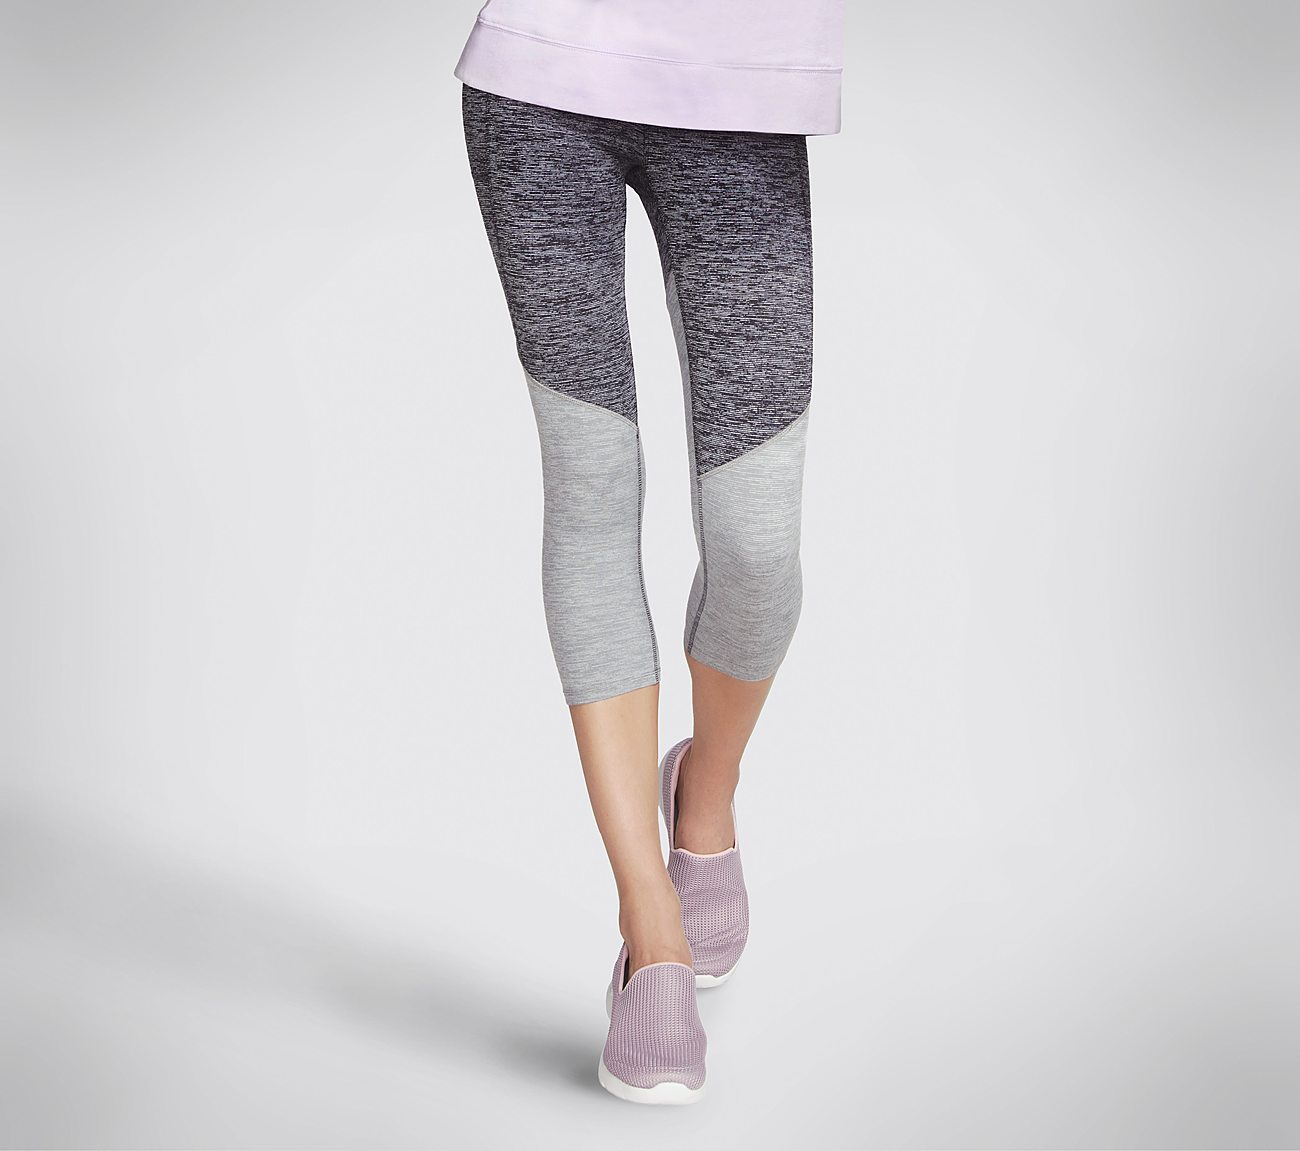 Skechers Performance Apparel Empower Midcalf Legging